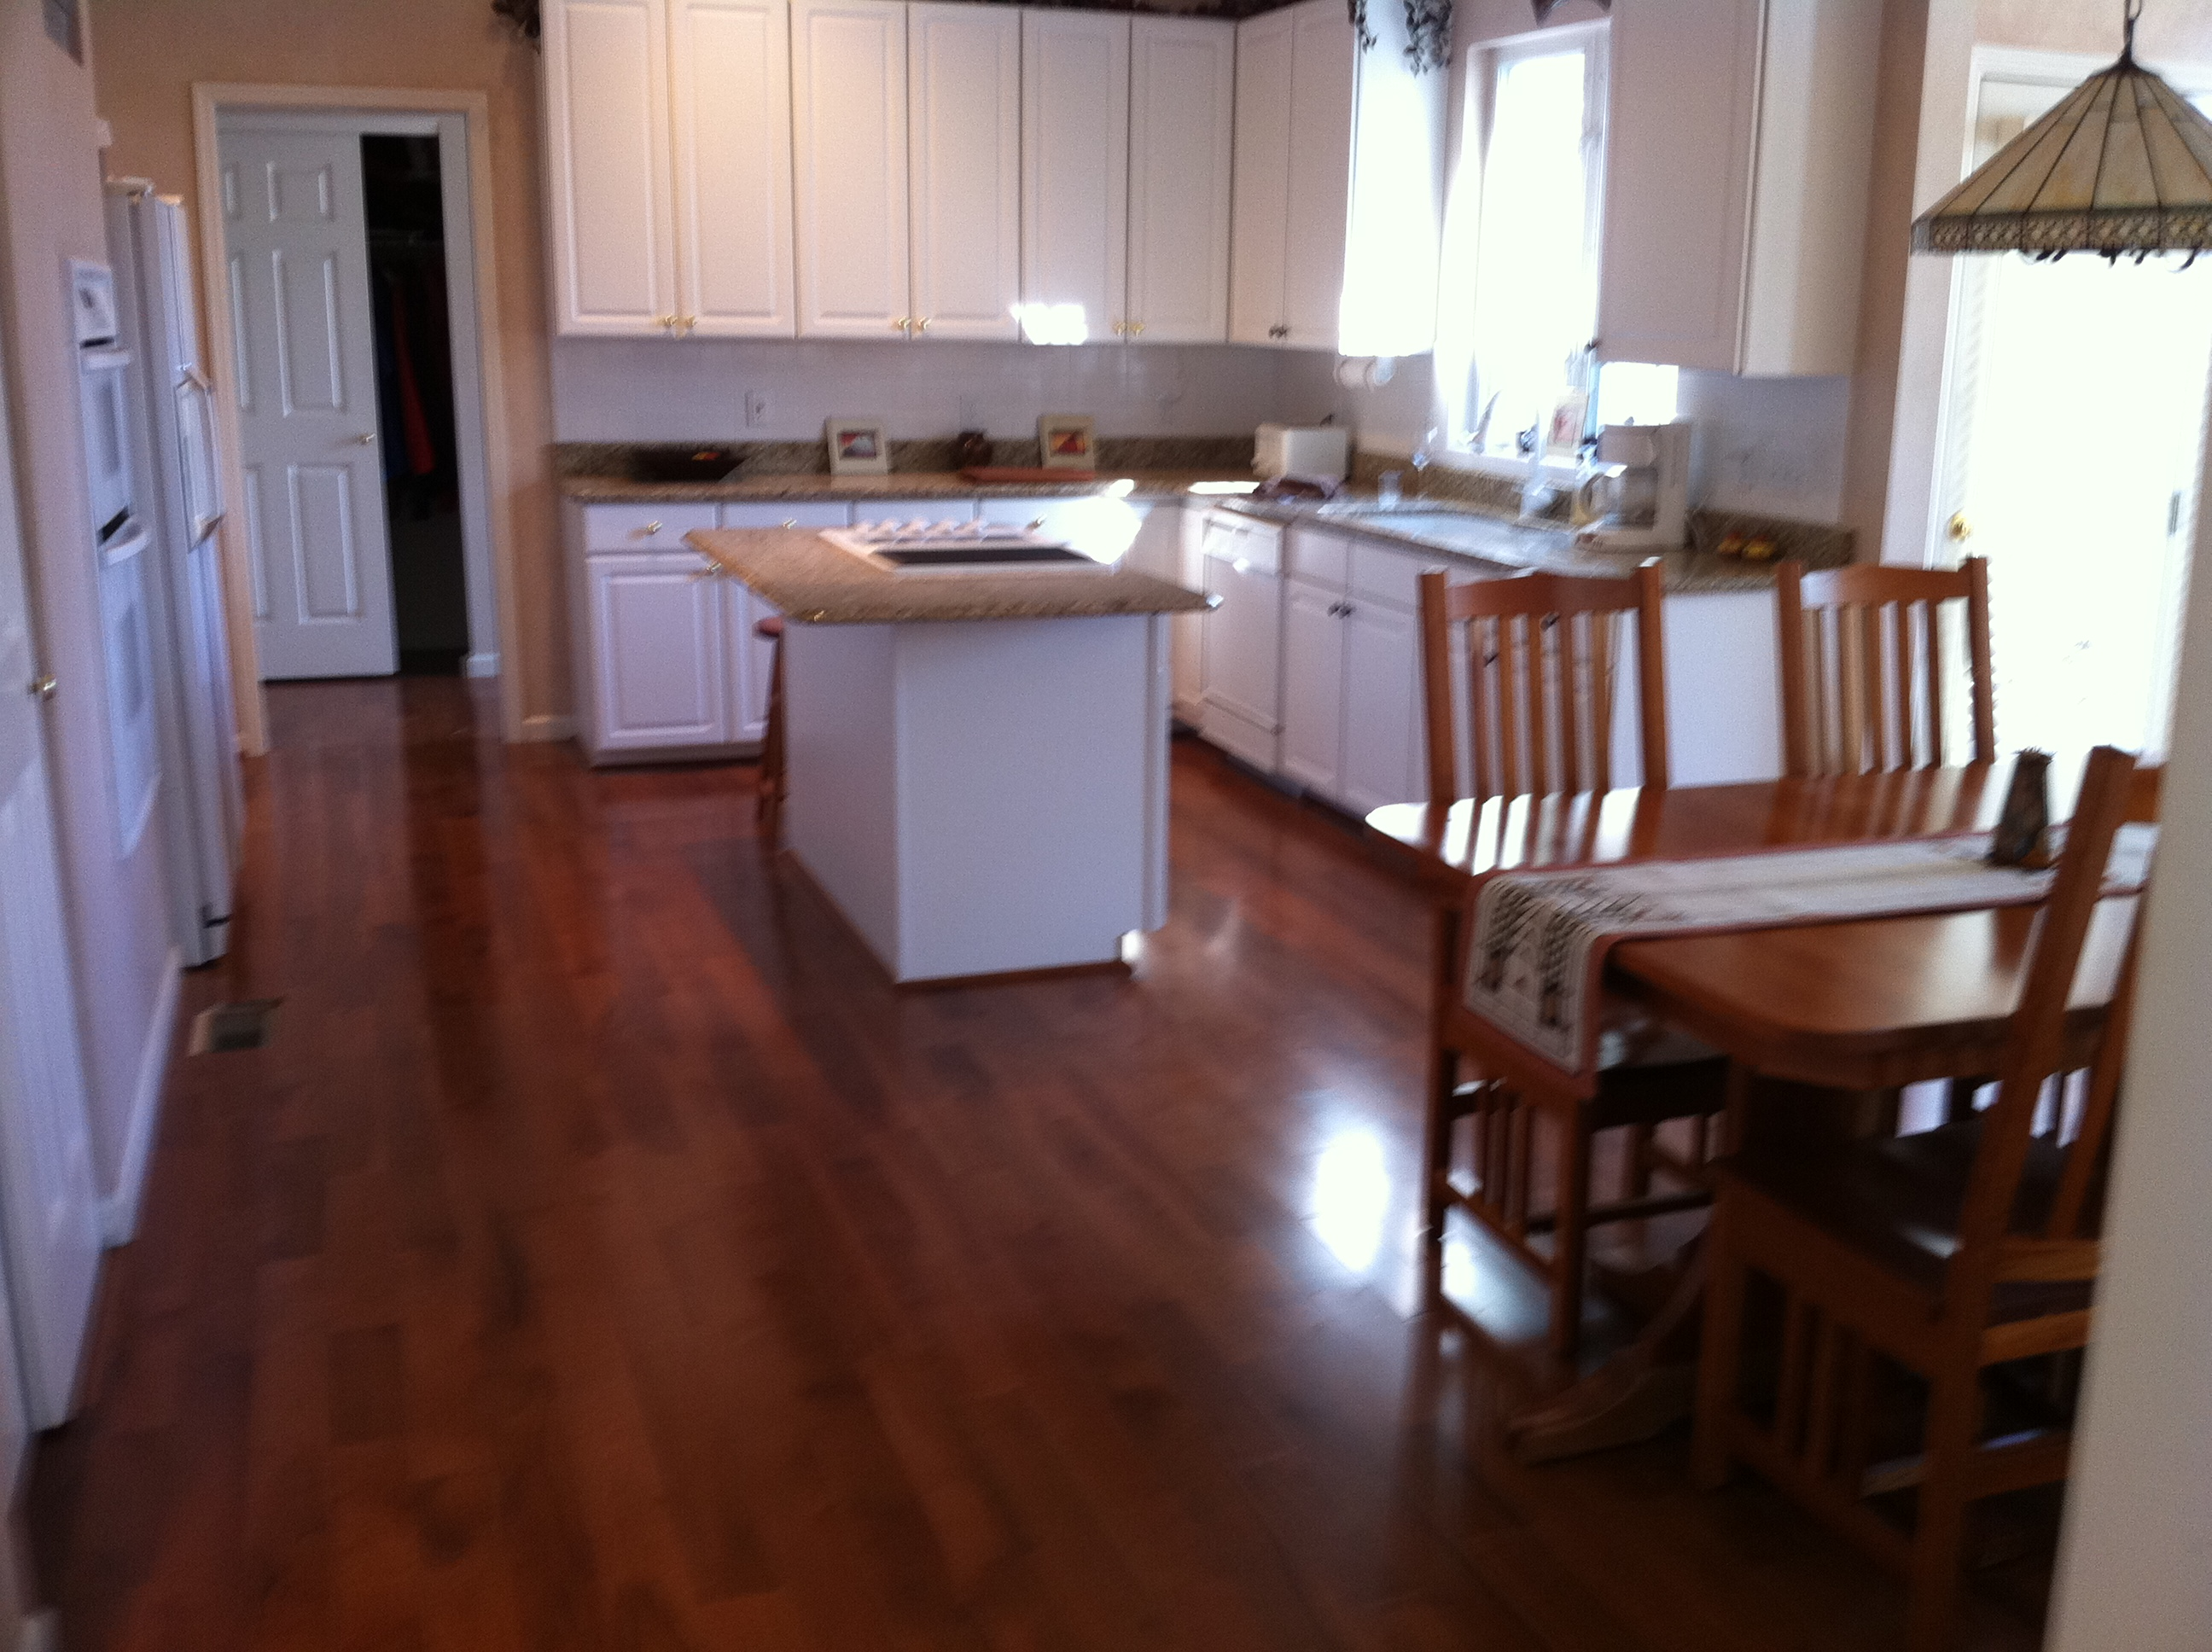 Hardwood Flooring In The Kitchen White Cabinets Wood Flooring Kitchen Cabinets Home Improvement